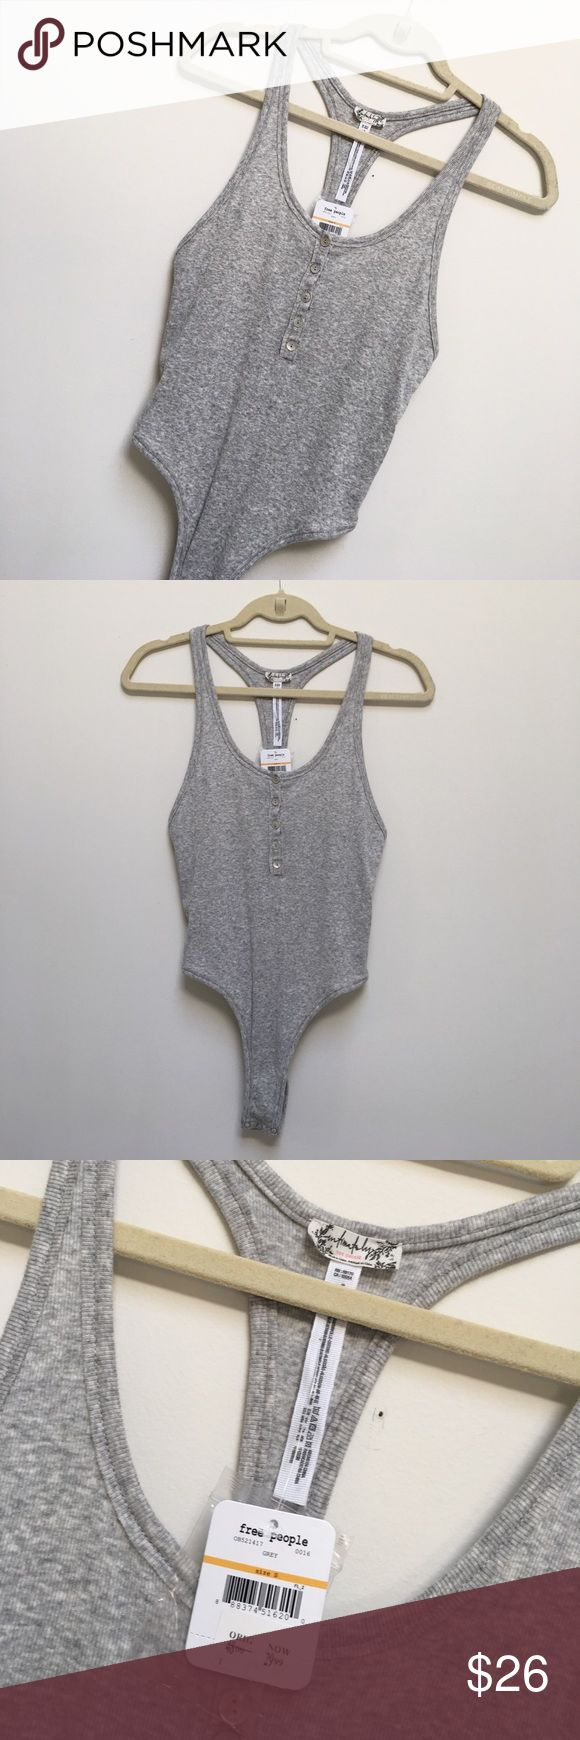 NWT Free People Body Suit New with tags never used never worn free people grey body suit. Size small Free People Tops